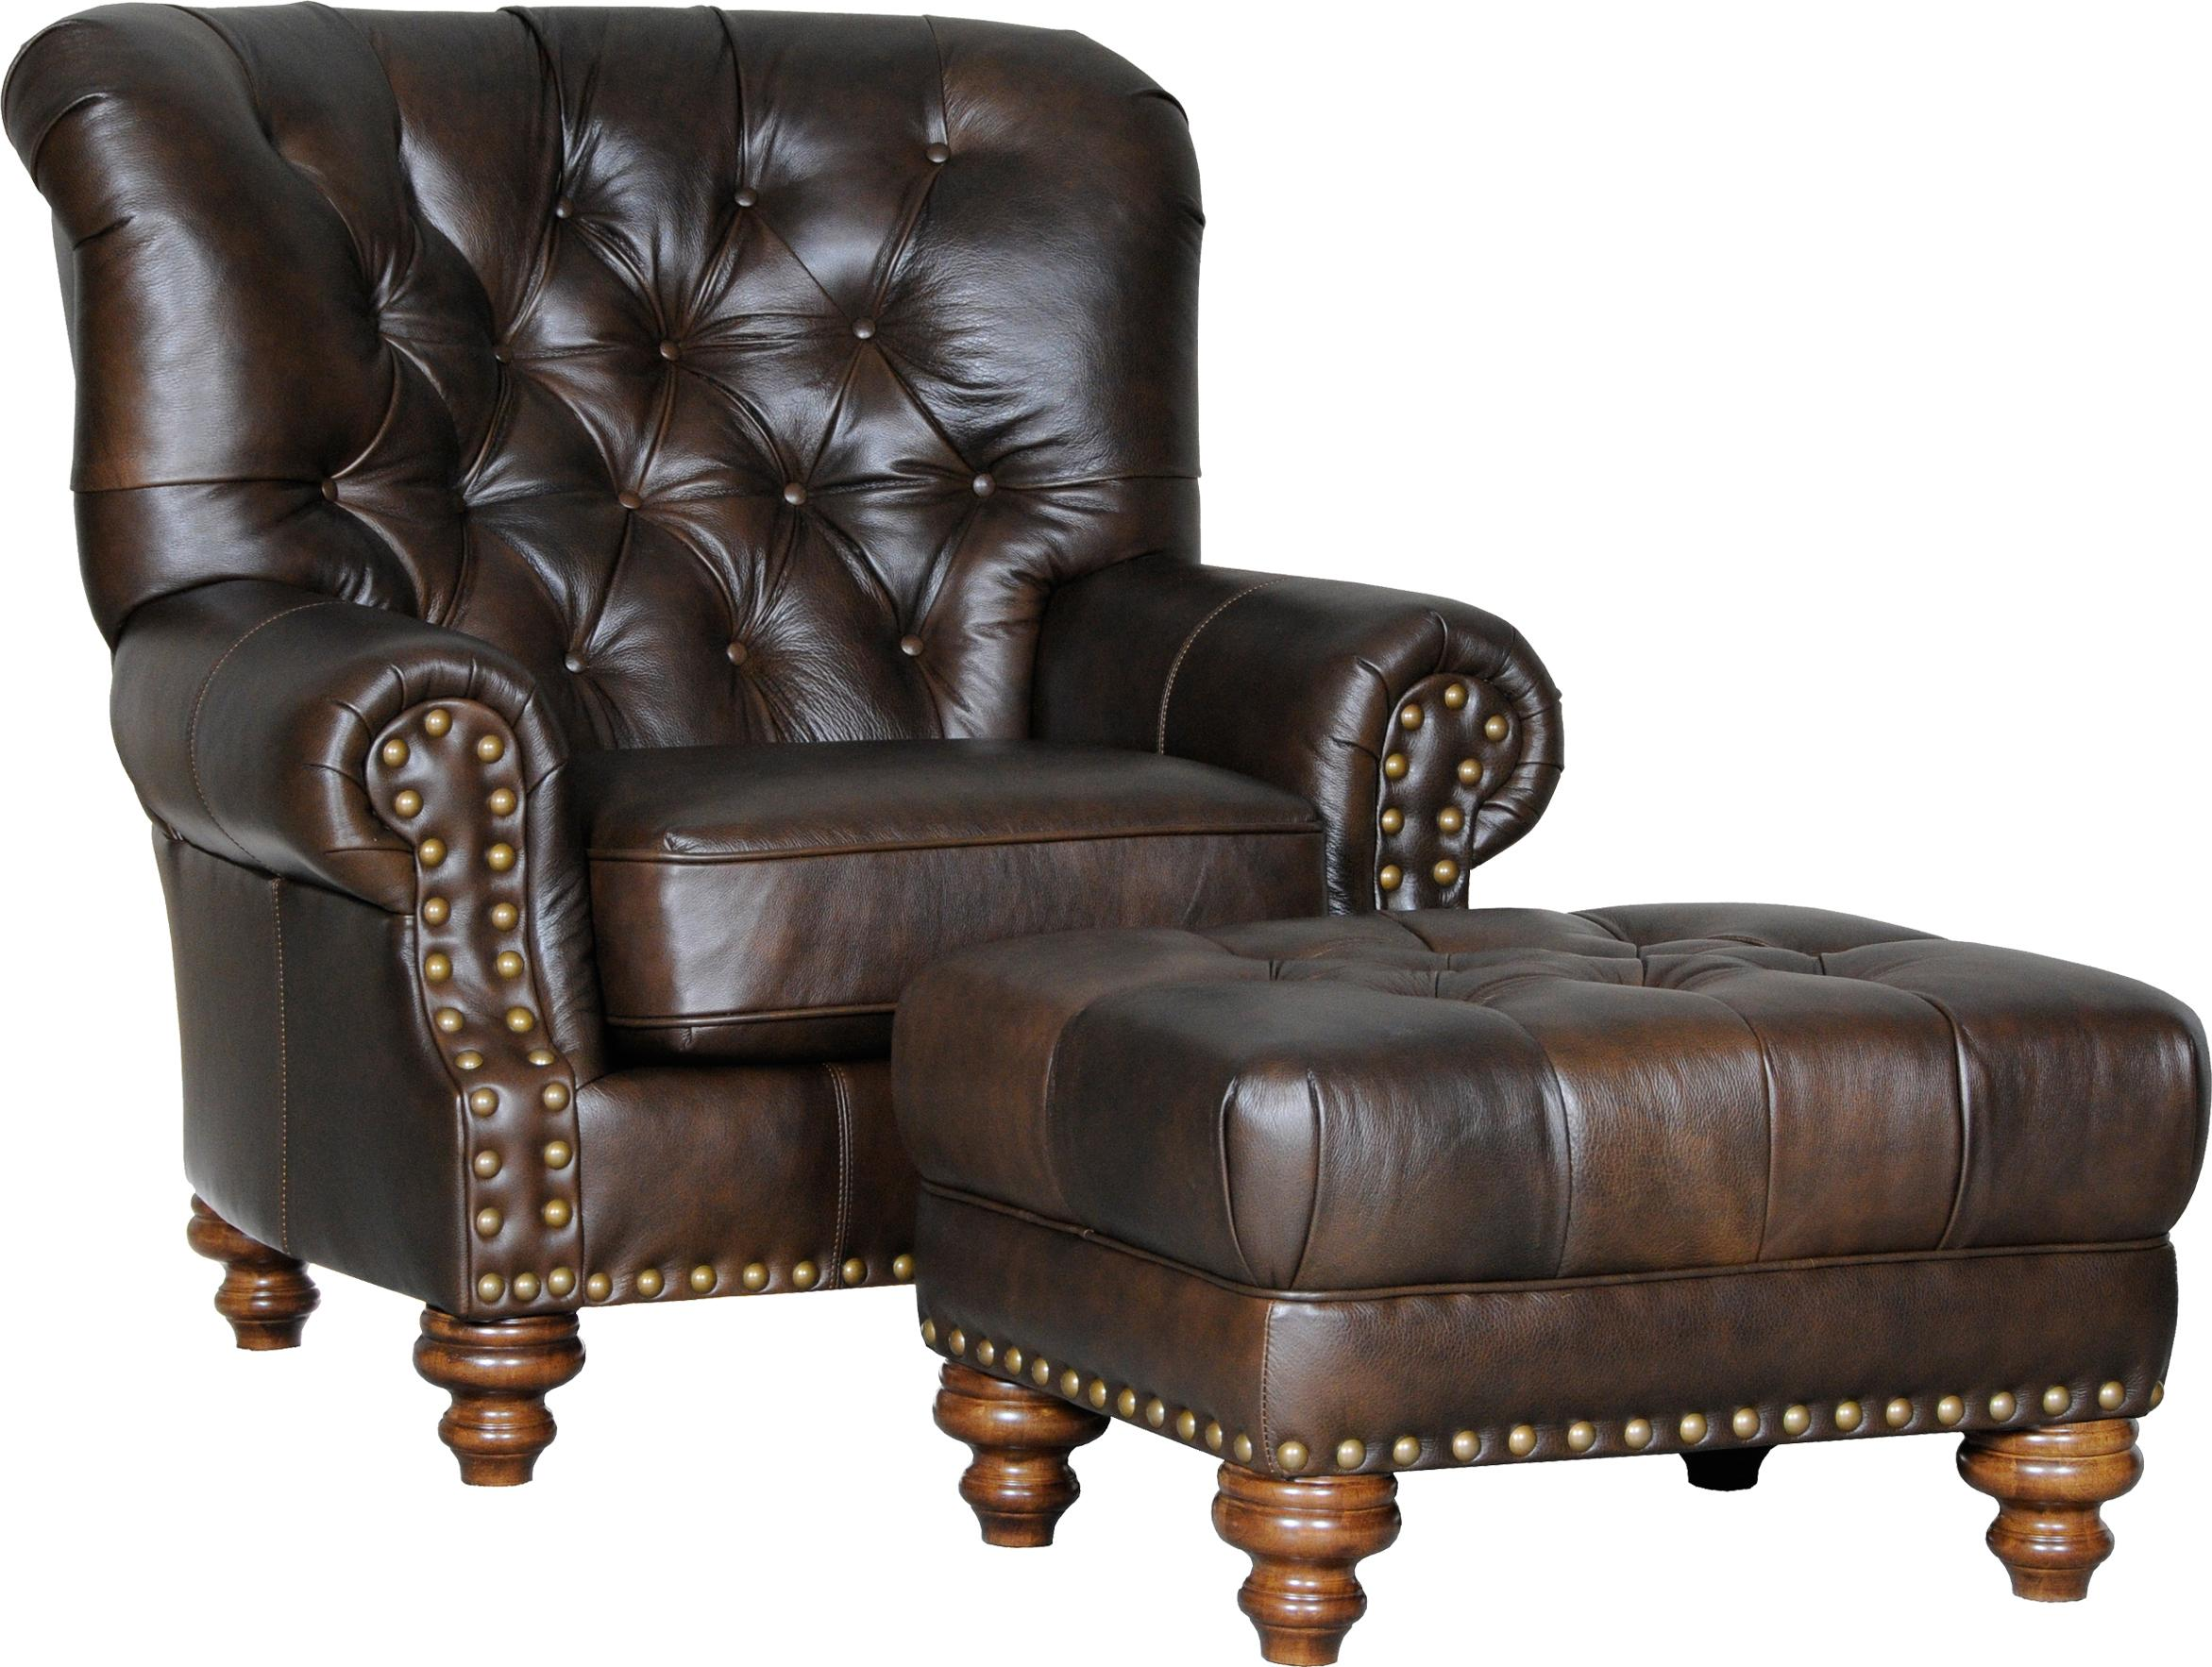 Mayo 931 Traditional Chair And Ottoman With Tufted Seat